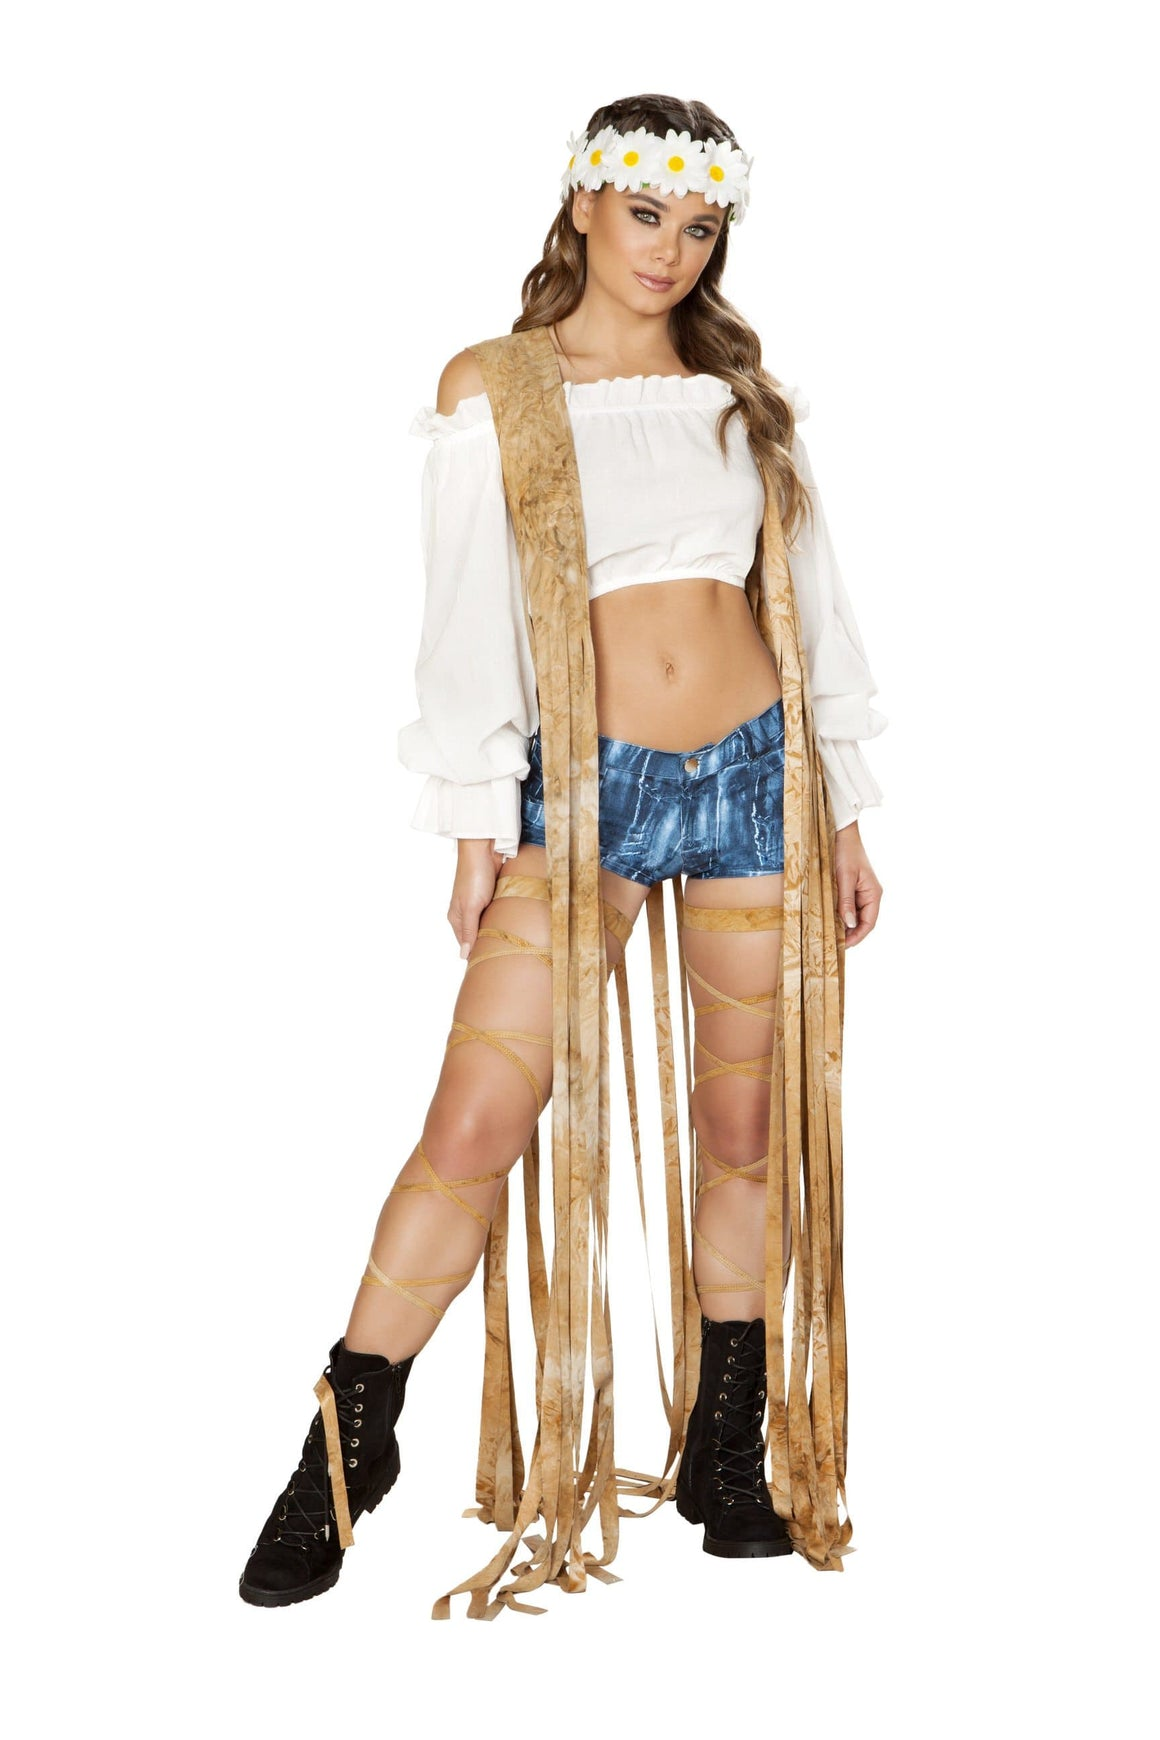 Roma S/M / Brown Brown 1pc Brown Tie Dye Suede Vest w/ Long Fringe Detail SHC-3588-BROWN-S/M Brown Tie Dye Suede Vest Fringe Detail | ROMA COSTUME 3588 Apparel & Accessories > Clothing > Shirts & Tops